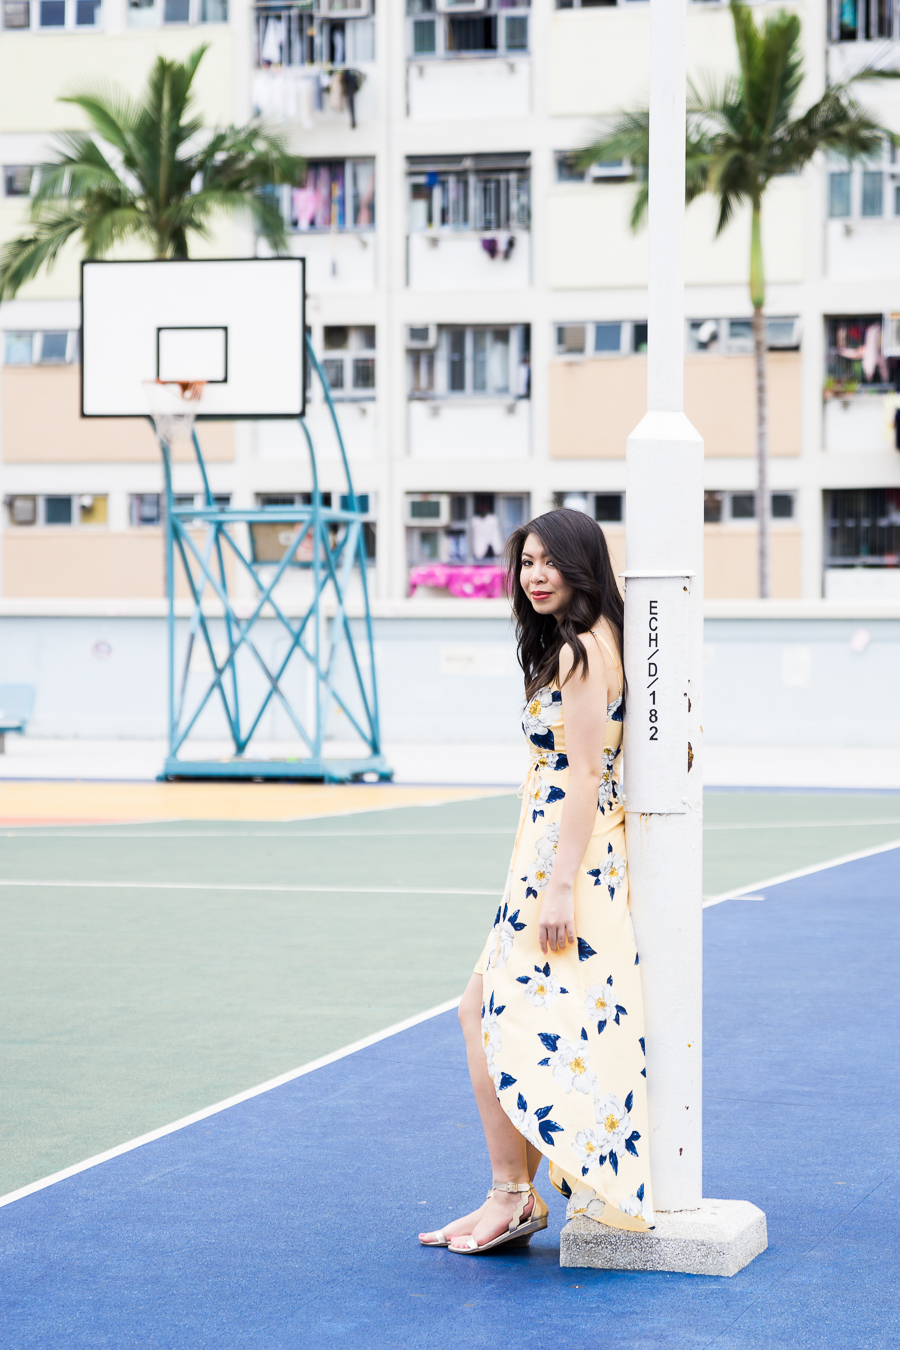 JOA yellow floral dress, how to get to Choi Hung Estate car park basketball court for Instagram photography in Hong Kong, petite fashion blog